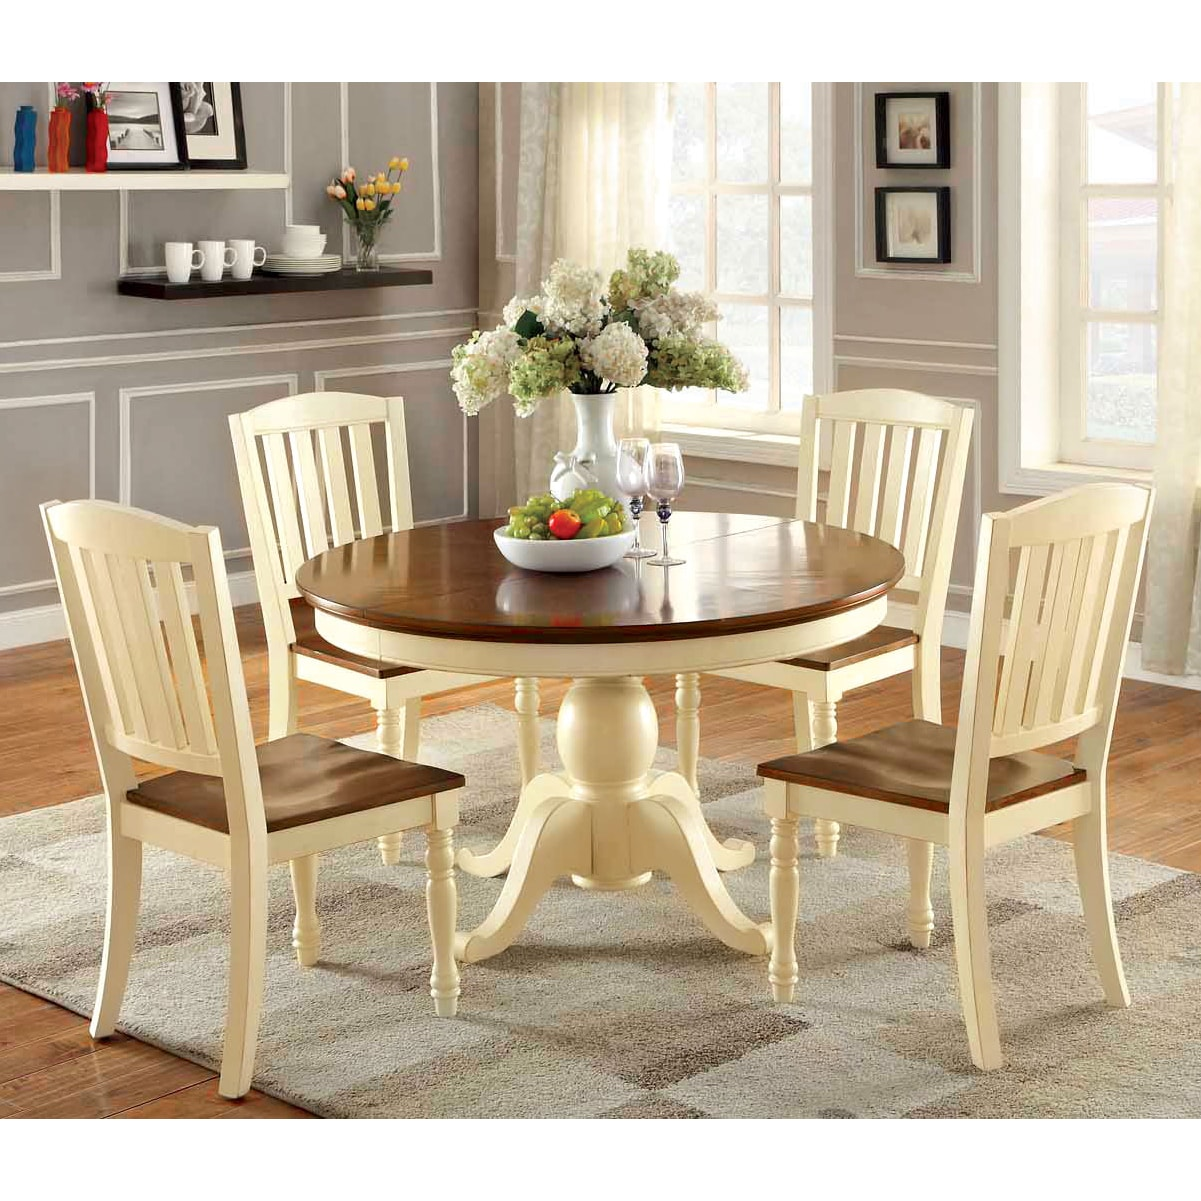 Shop Furniture of America Bethannie 5-Piece Cottage Style Oval Dining Set -  Free Shipping Today - Overstock.com - 9932230 - Shop Furniture Of America Bethannie 5-Piece Cottage Style Oval